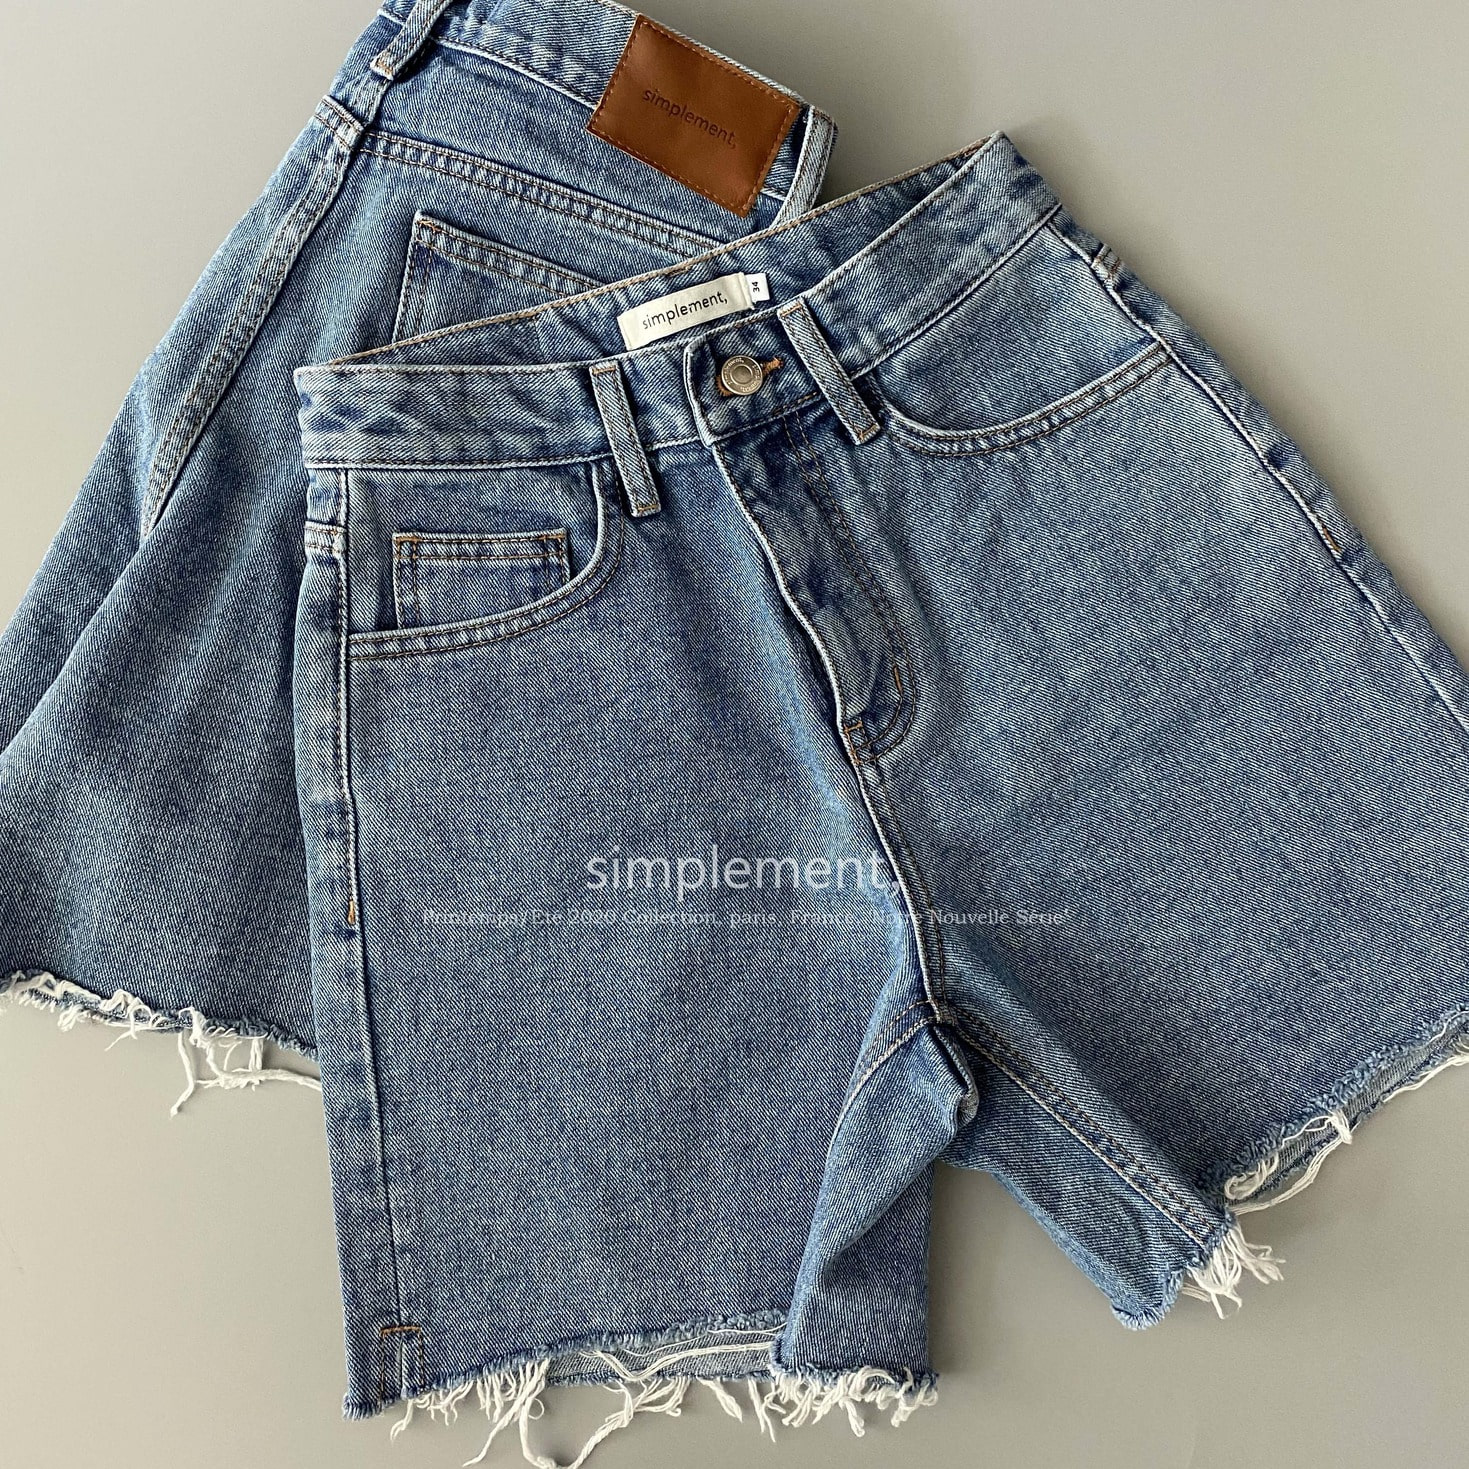 142 Juin Denim Shorts